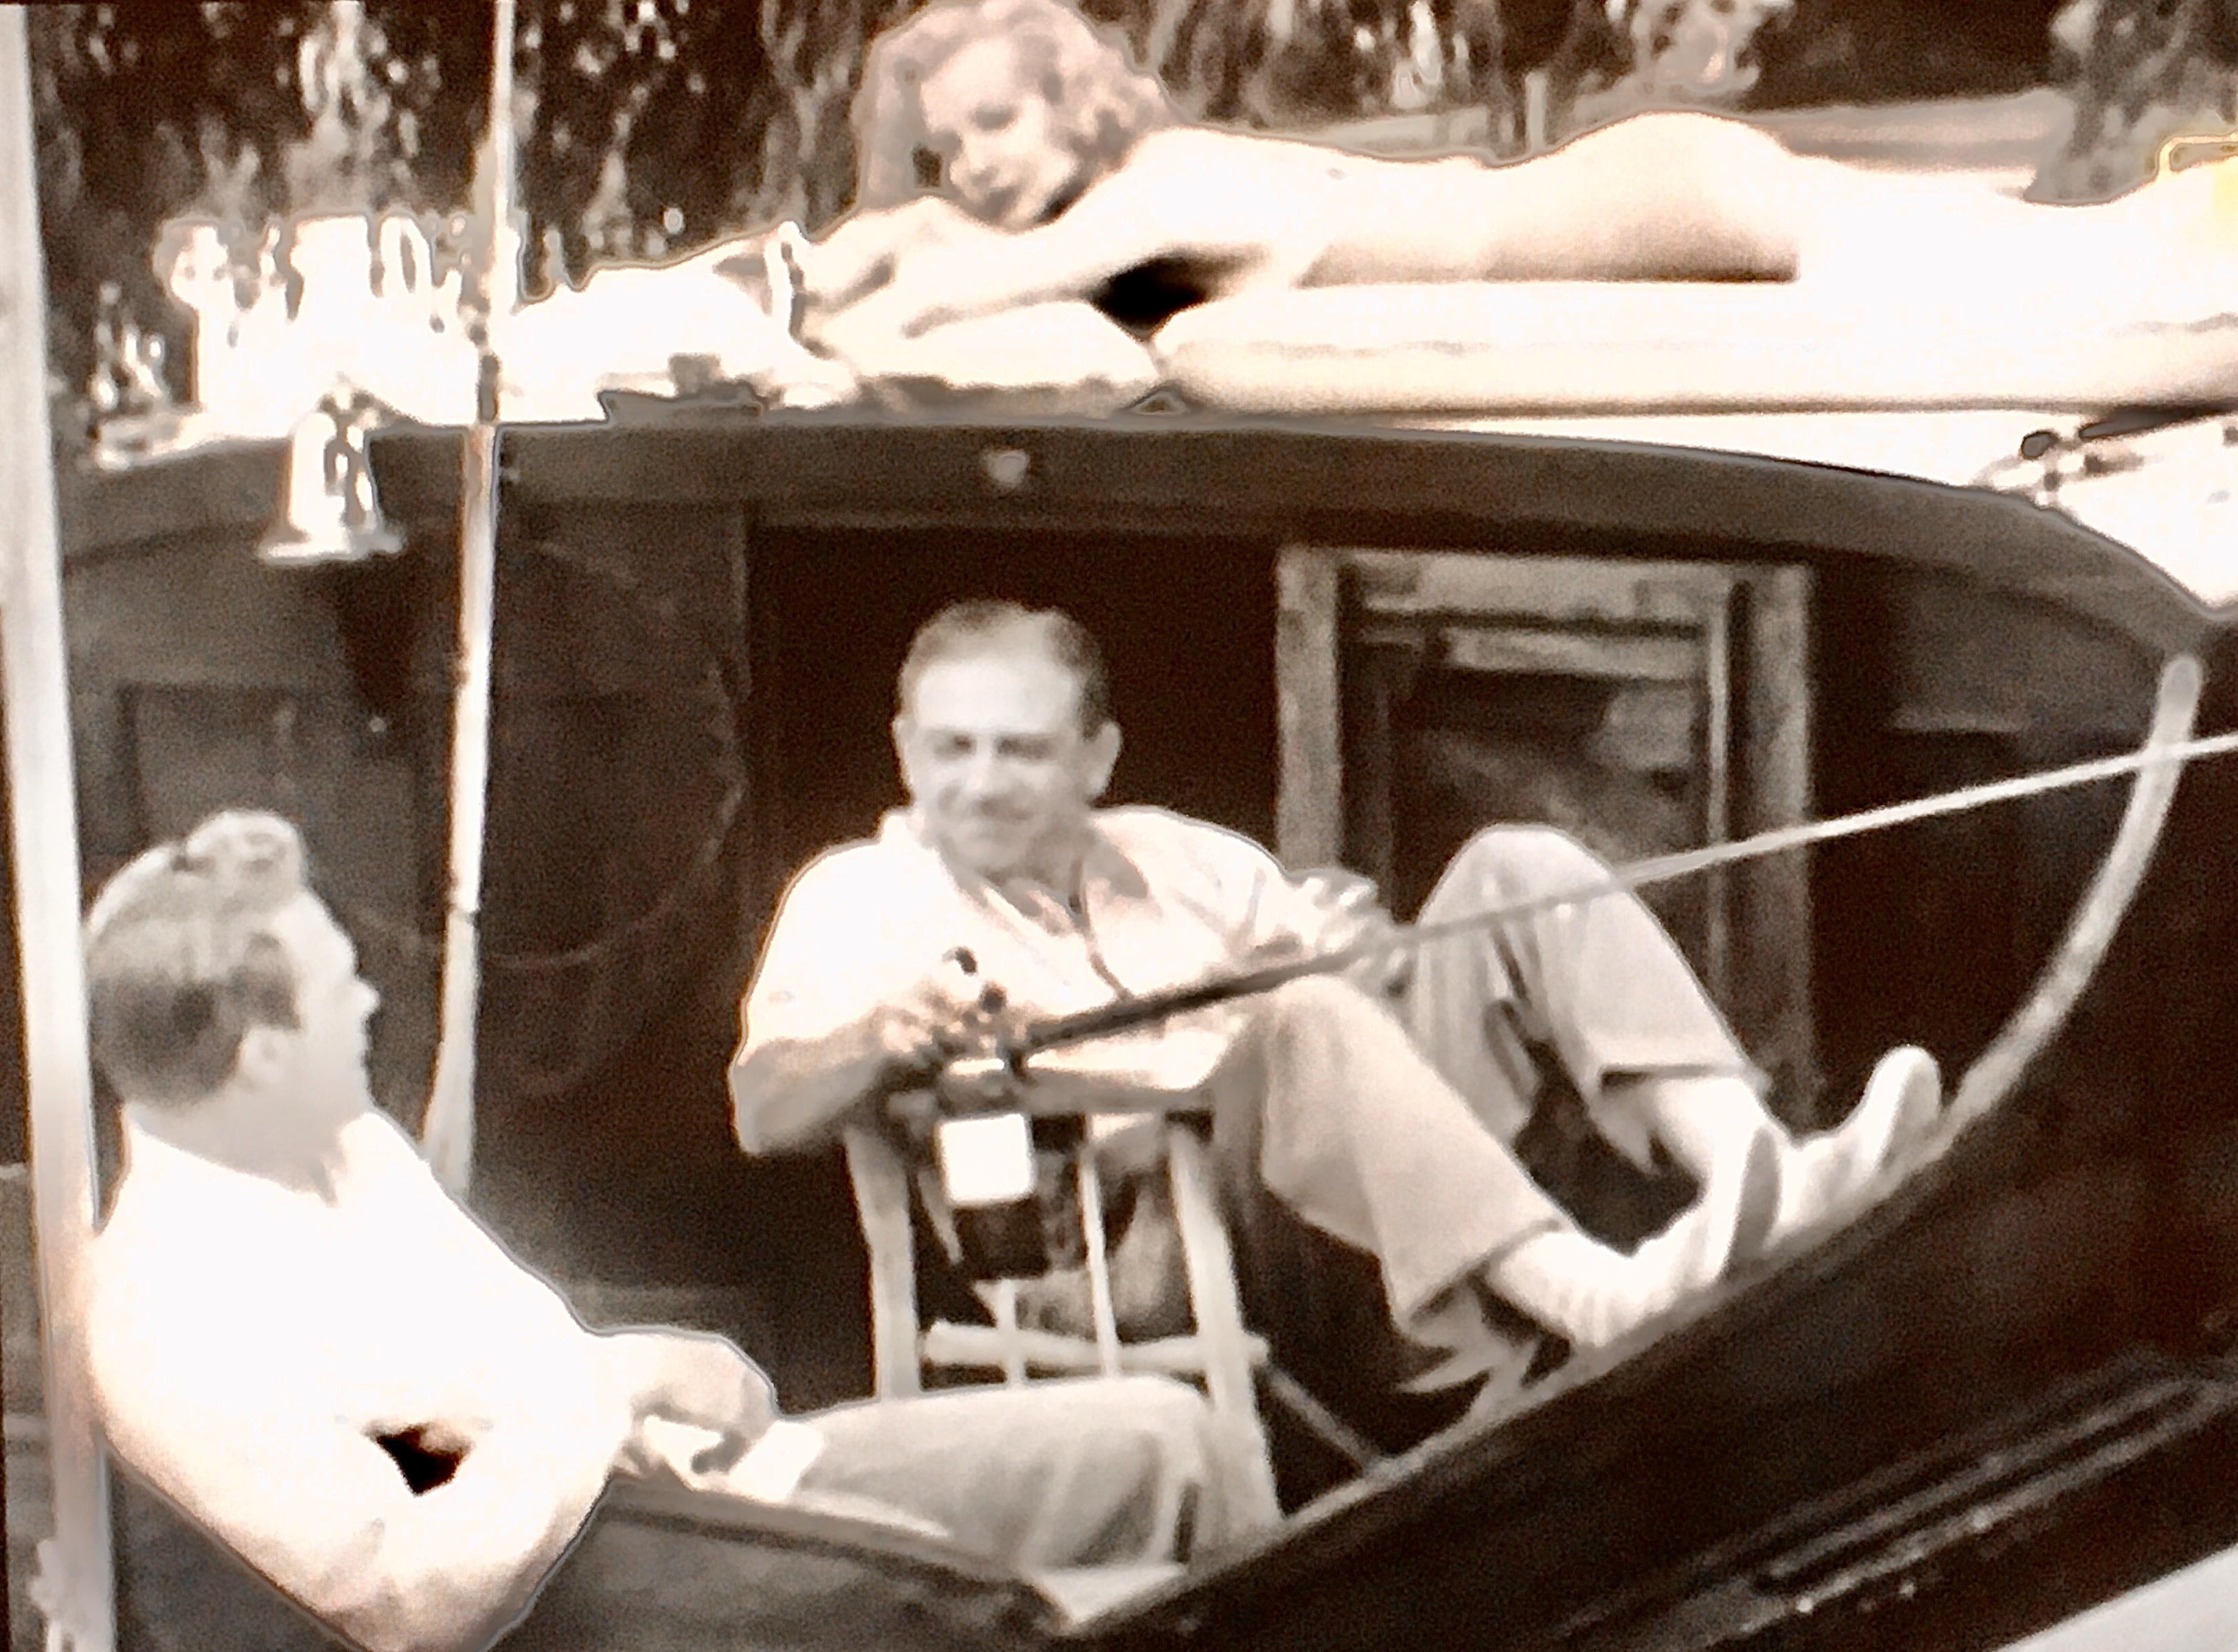 Hillary Brooke, Sidney James, and Alex Nicol in The House Across the Lake (1954)